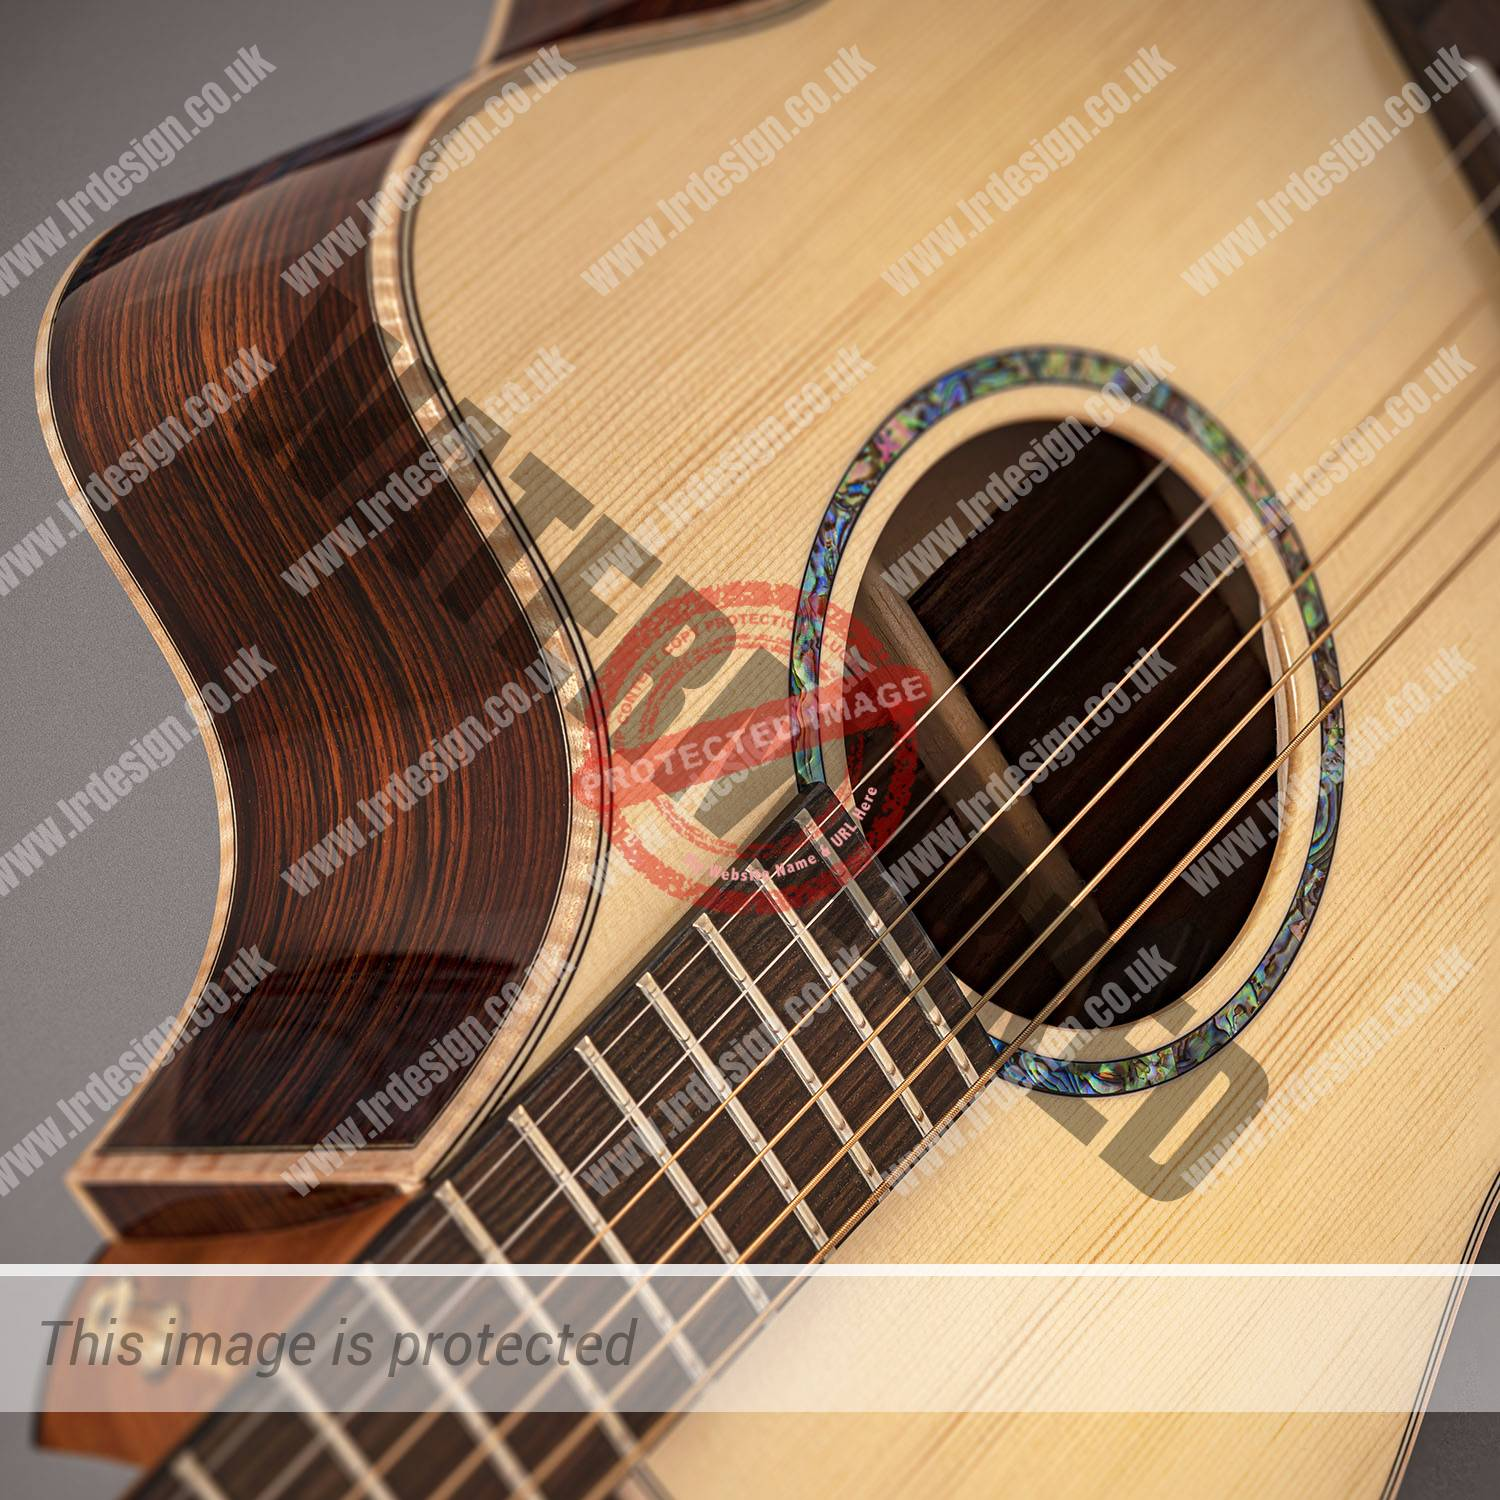 Faith acoustic guitar, close up of the rosette and sound hole.